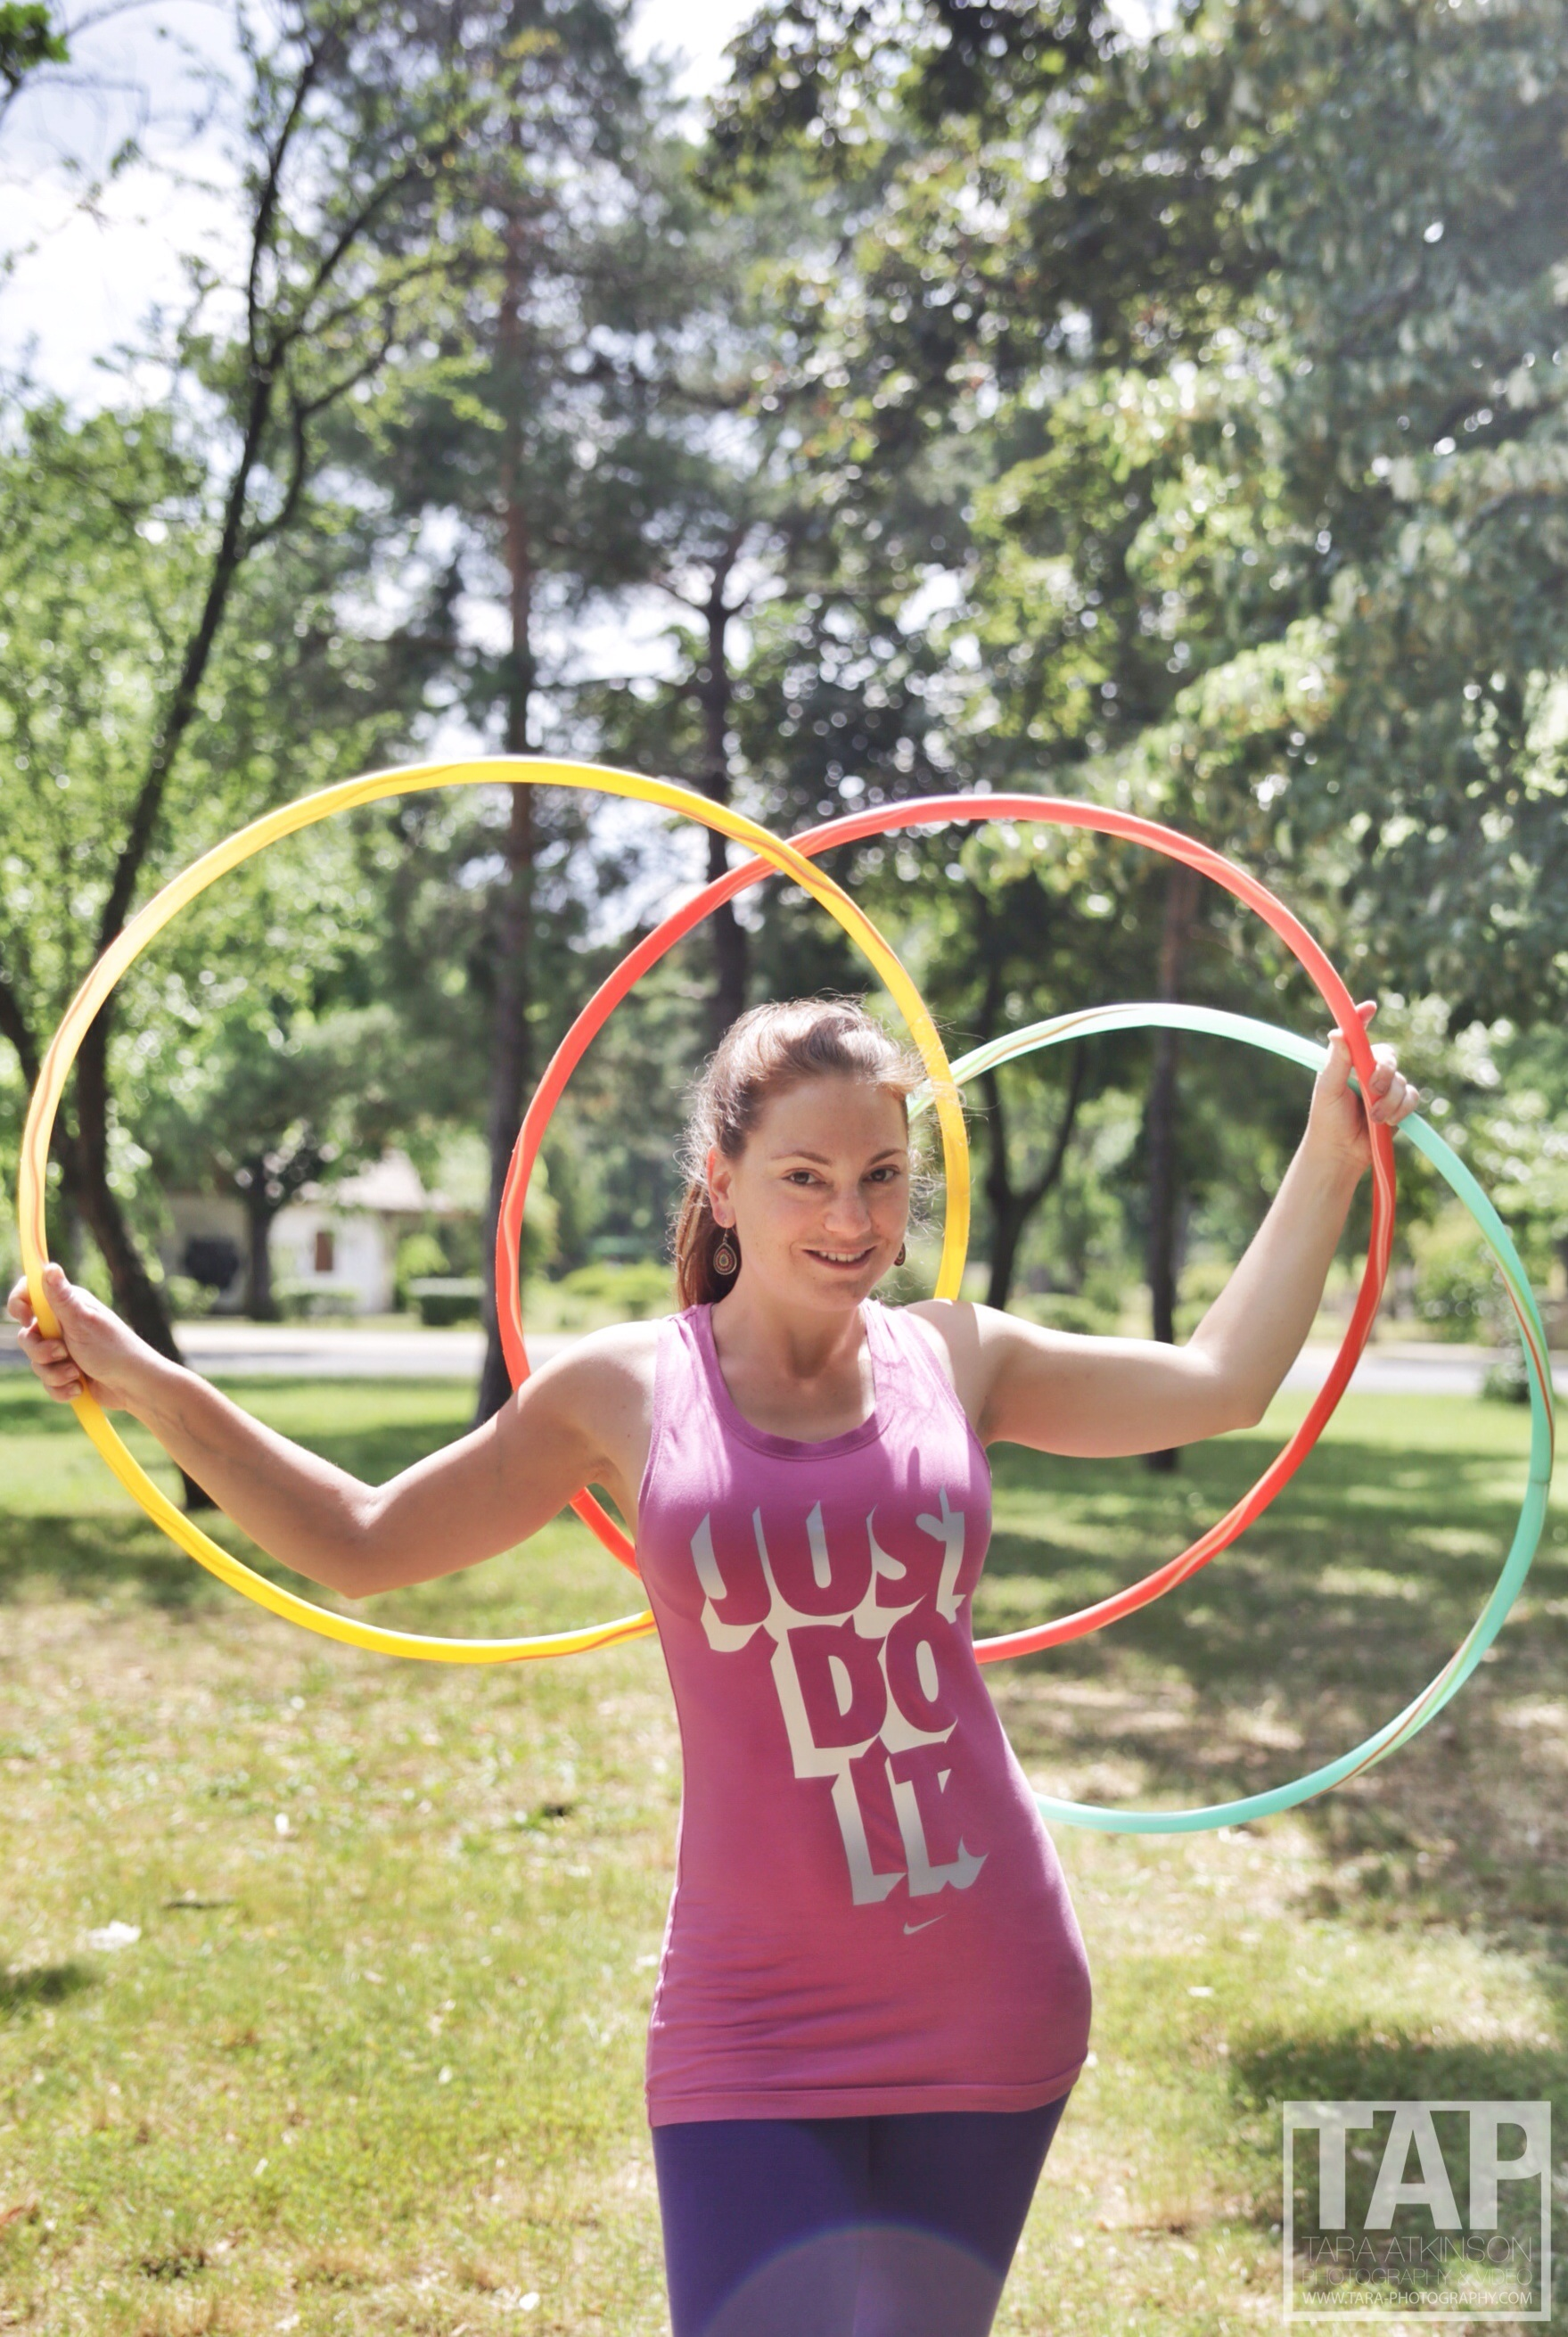 You can check out Anna at the Everness festival this year in Hungary- she's running the hoop workshops, and my word she has the moves - such an honour to hoop with her!